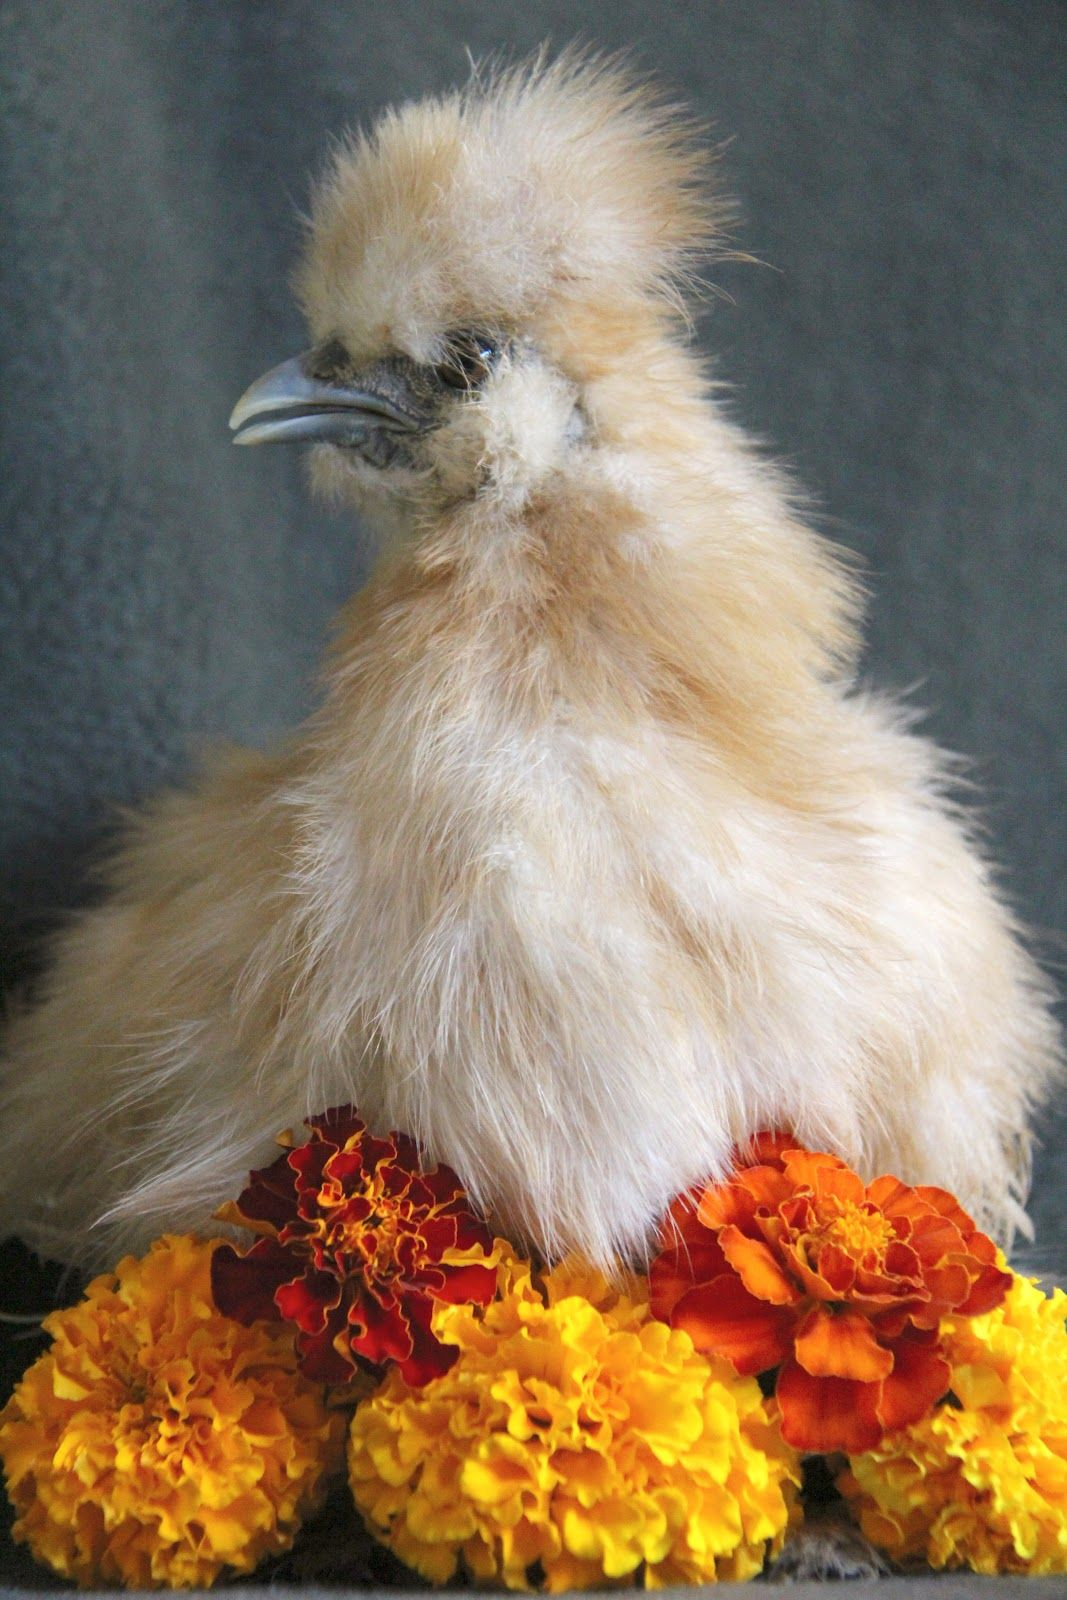 Juvenile Tolbunt from A Chicken A Day - roosters